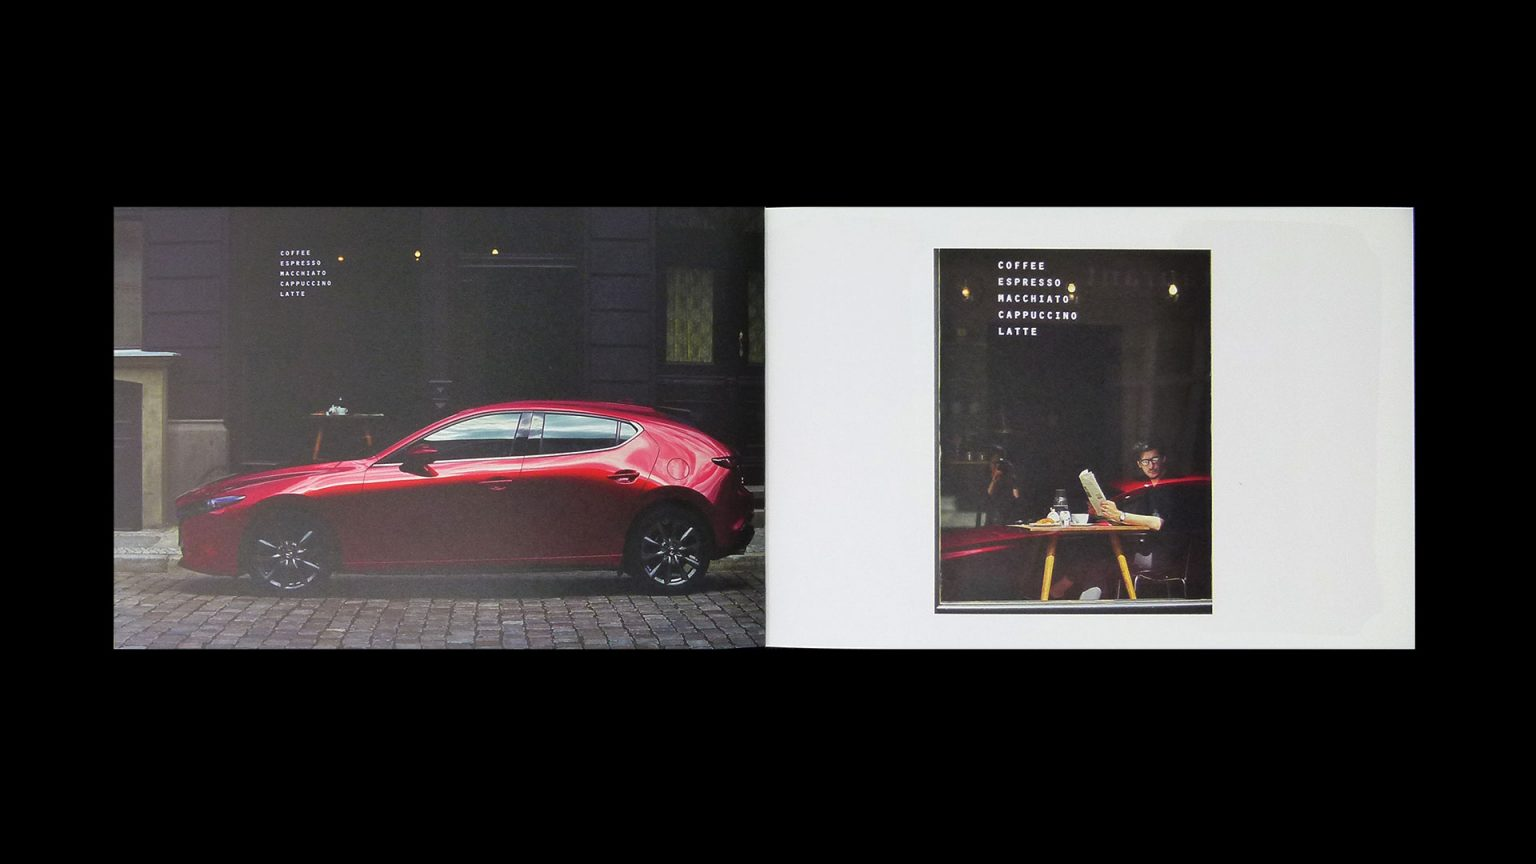 """The creative team developed something they call """"moments in time"""" – catching people taking a quick glance at the car out of the corner of their eye."""